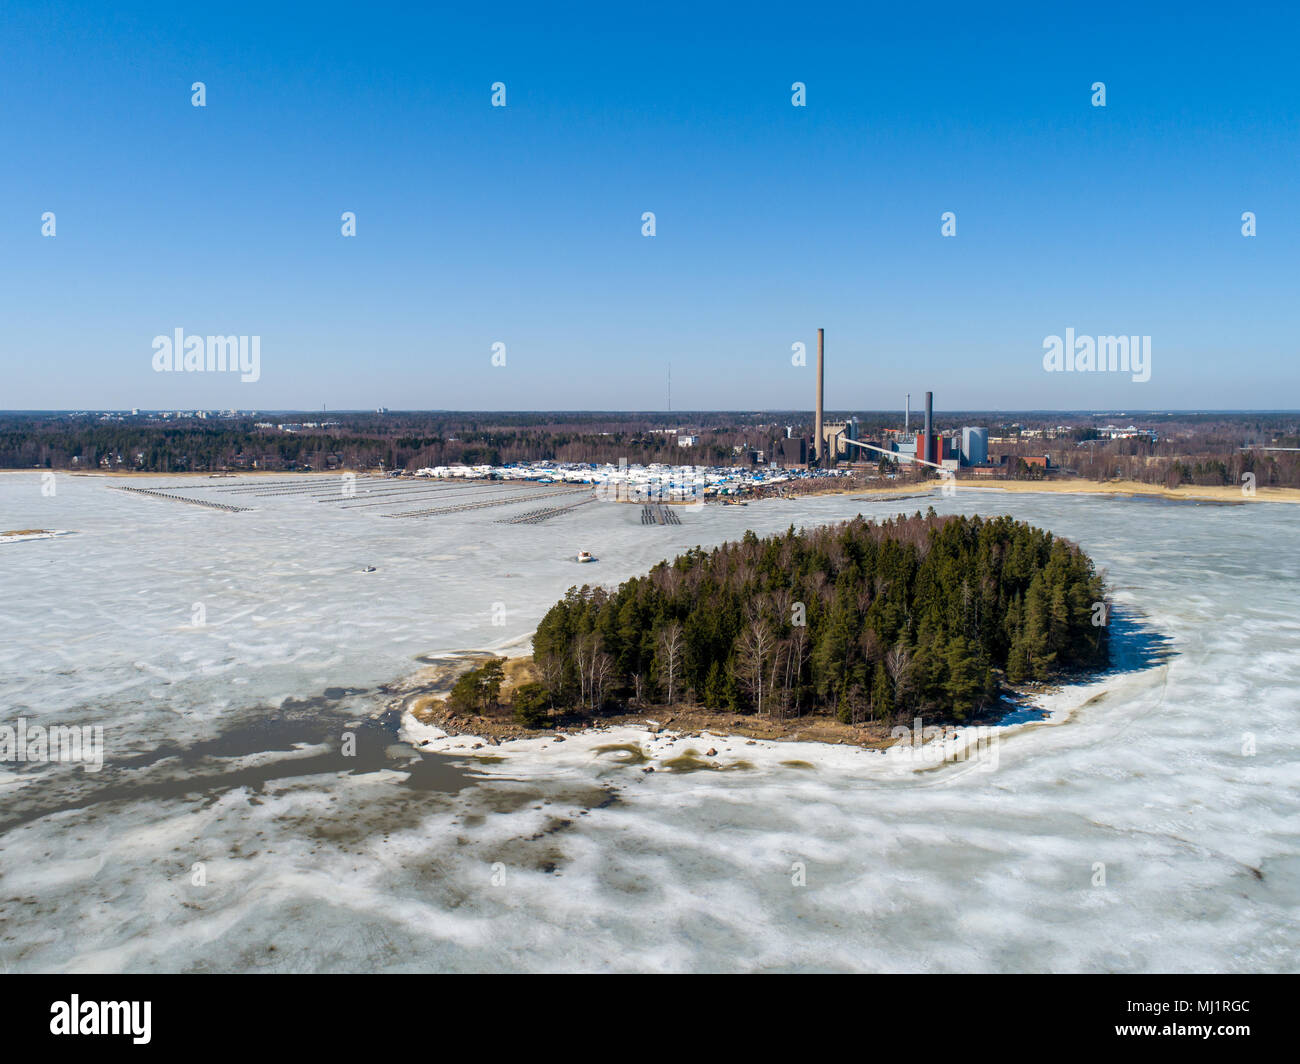 Finland Espoo, Suomenoja Marina With The Boats Still On Land At Winter  Storage, Power Plant In The Back And Small Island Of Pirisaari In The  Foregroun